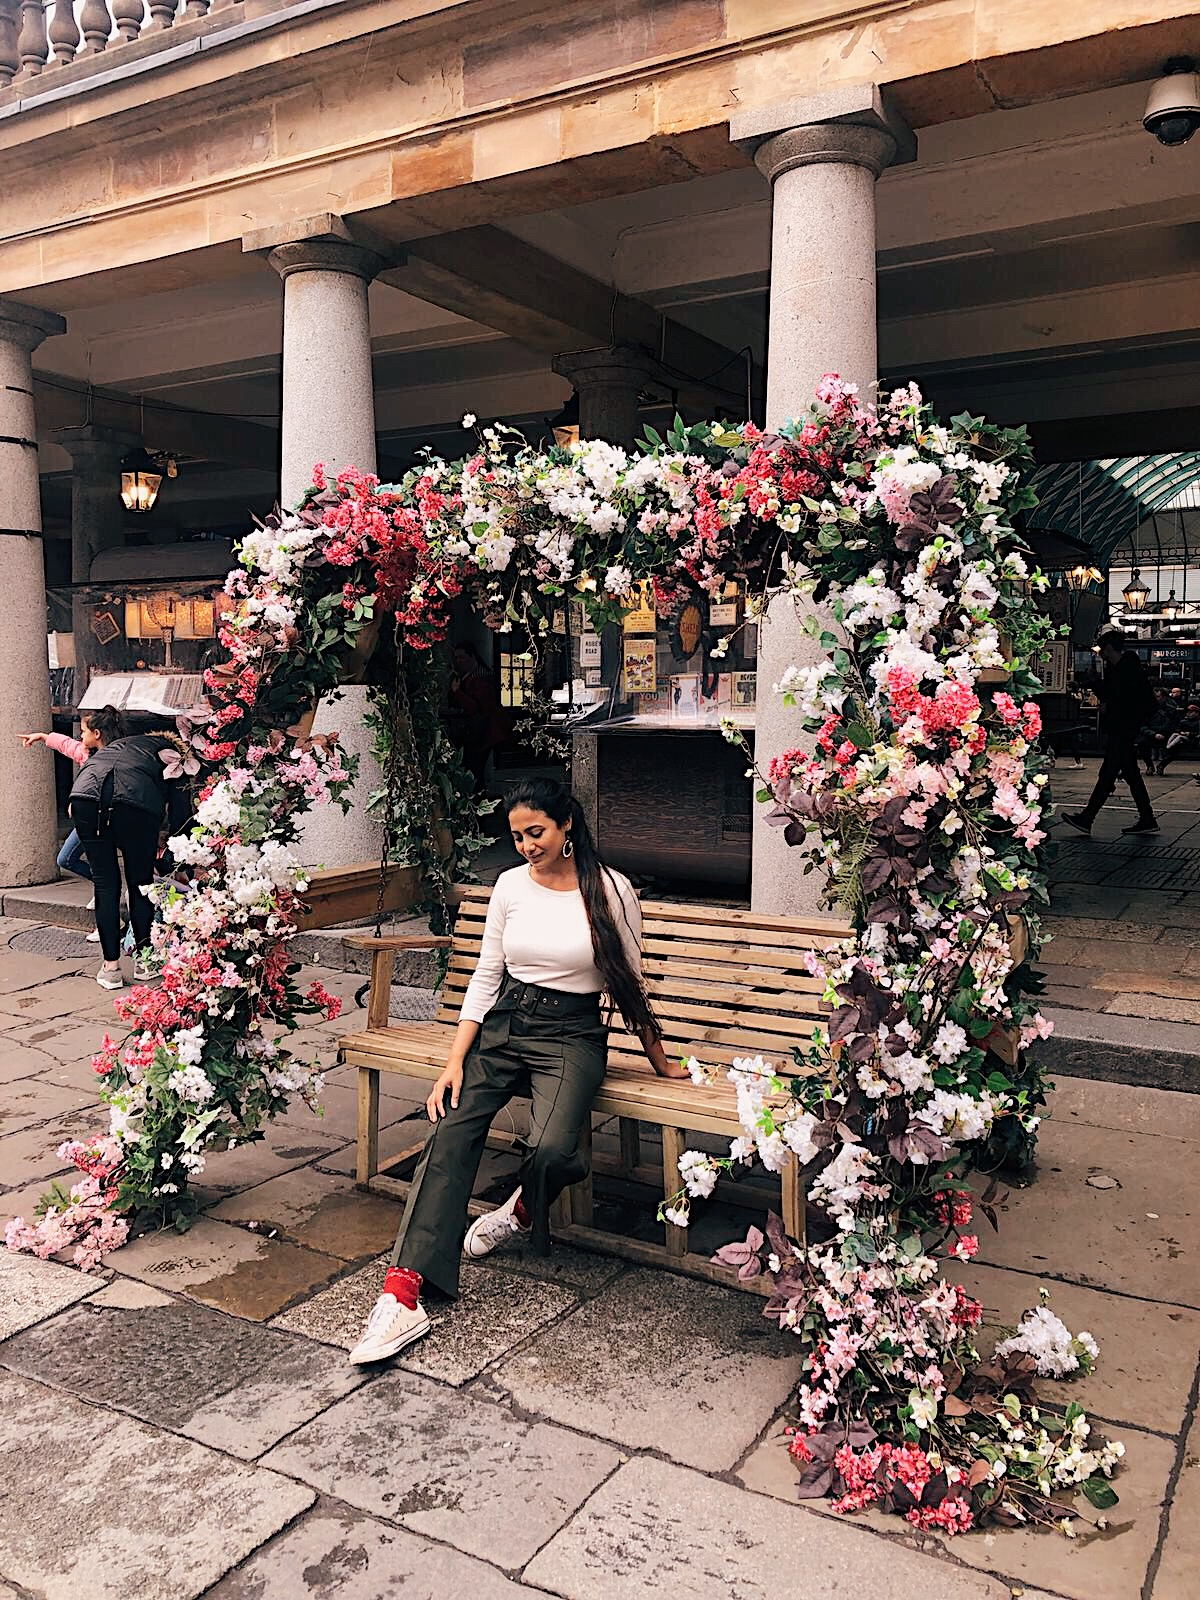 khaki paperbag waist trousers, khaki and white, wide leg trousers, zara trousers, converse outfit, spring outfit, london in spring, london street style, london spring look, spring day in london, covent garden, flowers in london spring, indian blogger, uk blog, london blogger